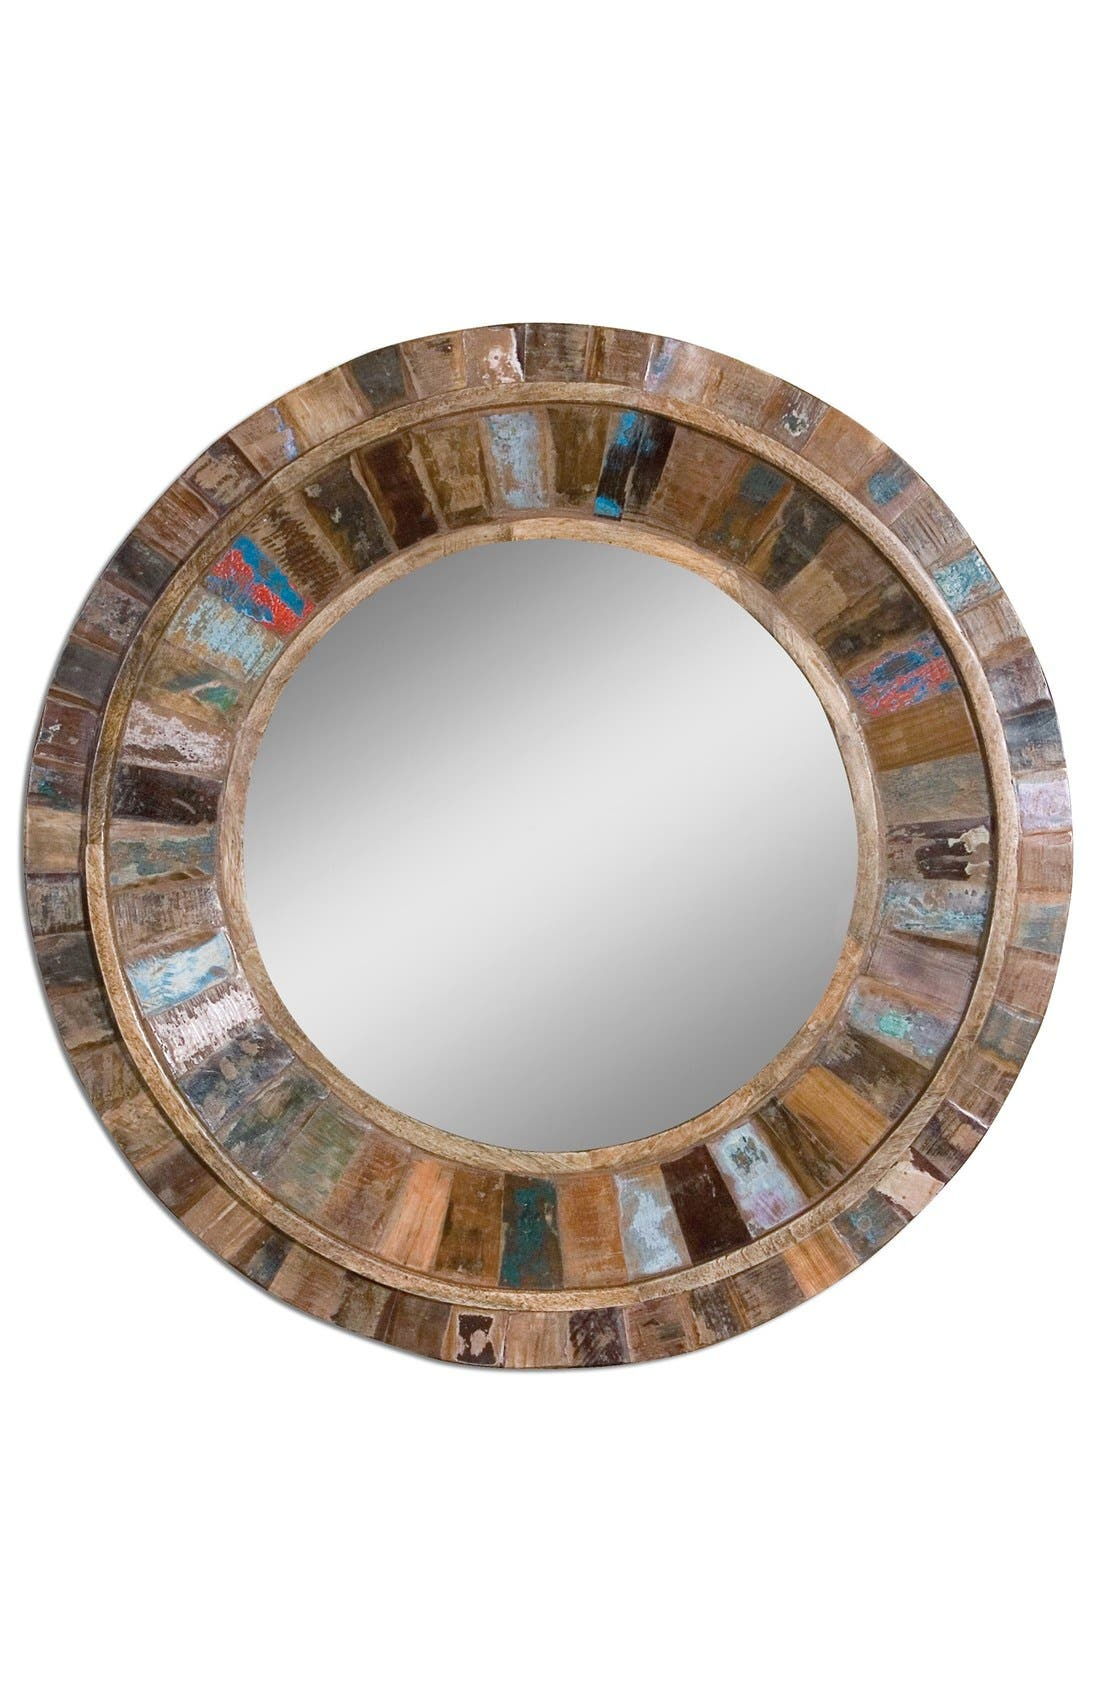 'Jeremiah' Round Wooden Wall Mirror,                         Main,                         color, Brown